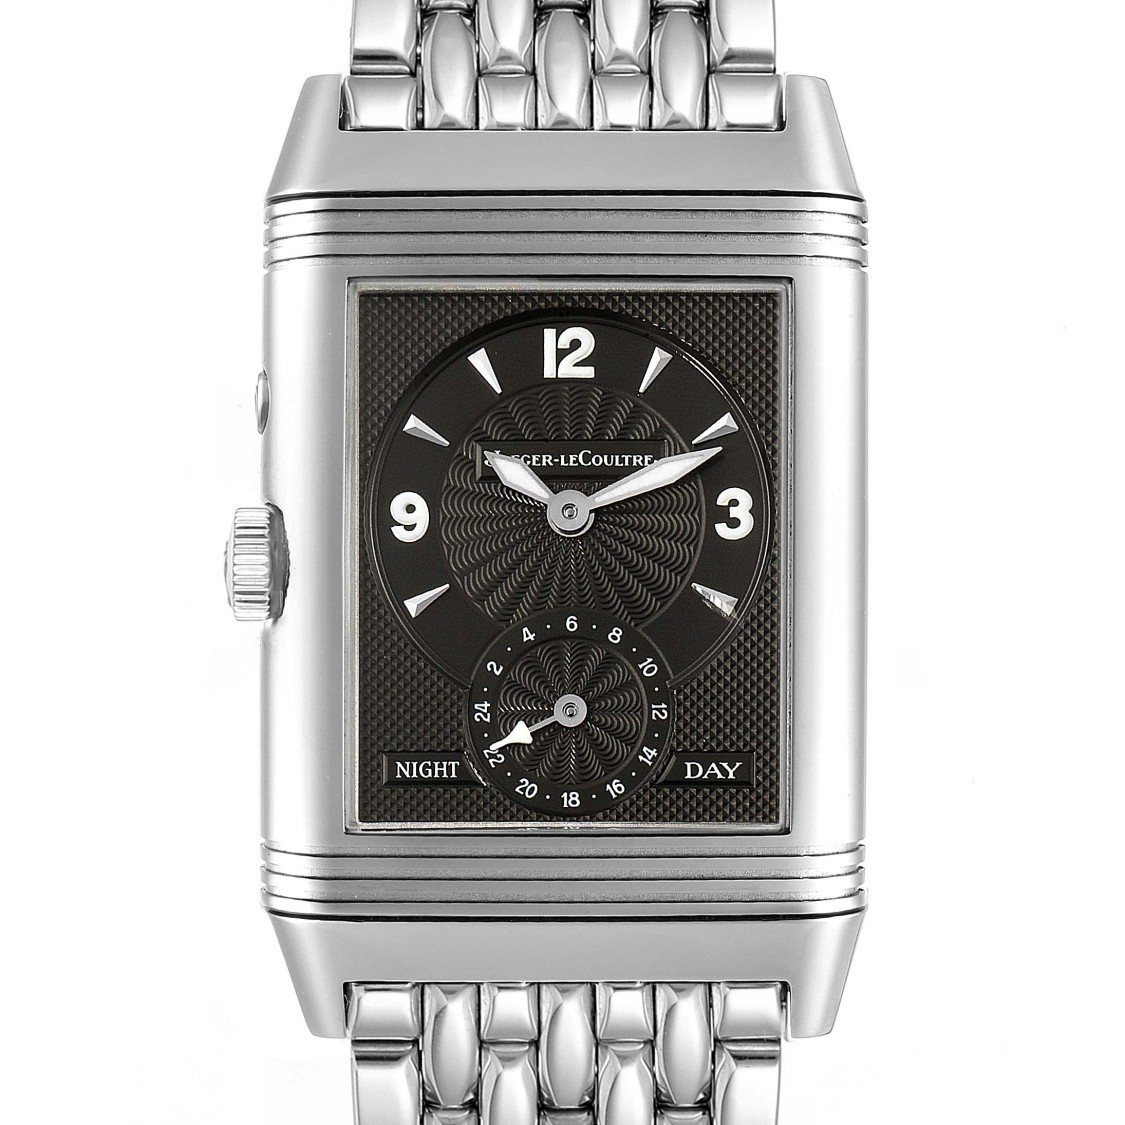 Jaeger-lecoultre Reverso Duo Day Night Steel Watch 270.8.54 Q270854 In Not Applicable